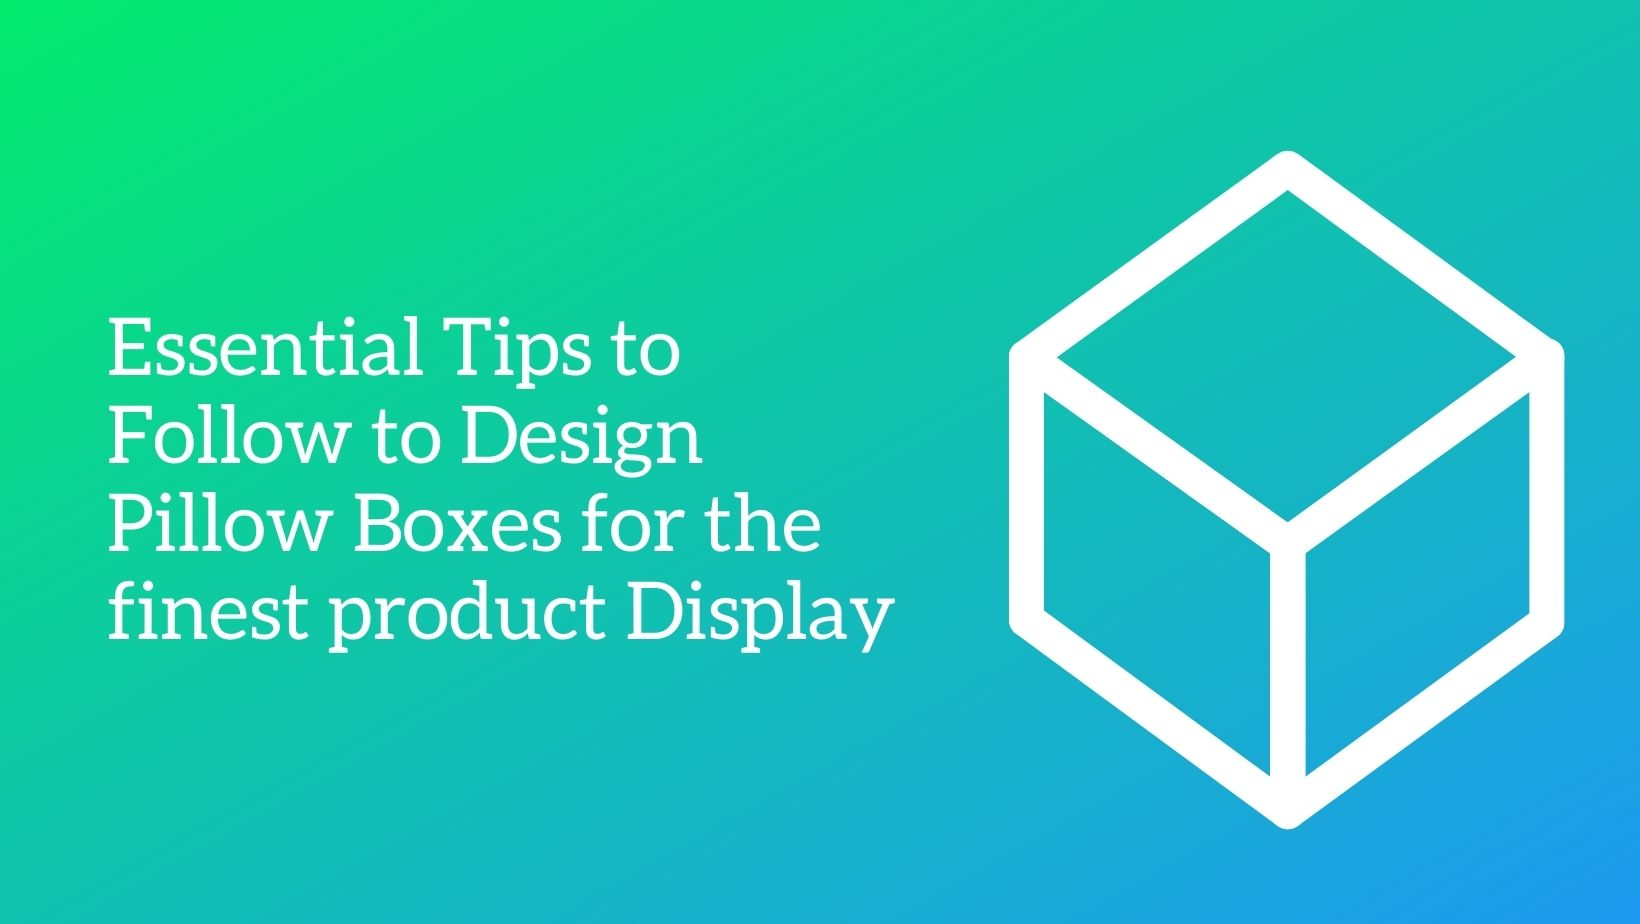 Essential Tips to Follow to Design Pillow Boxes for the finest product Display